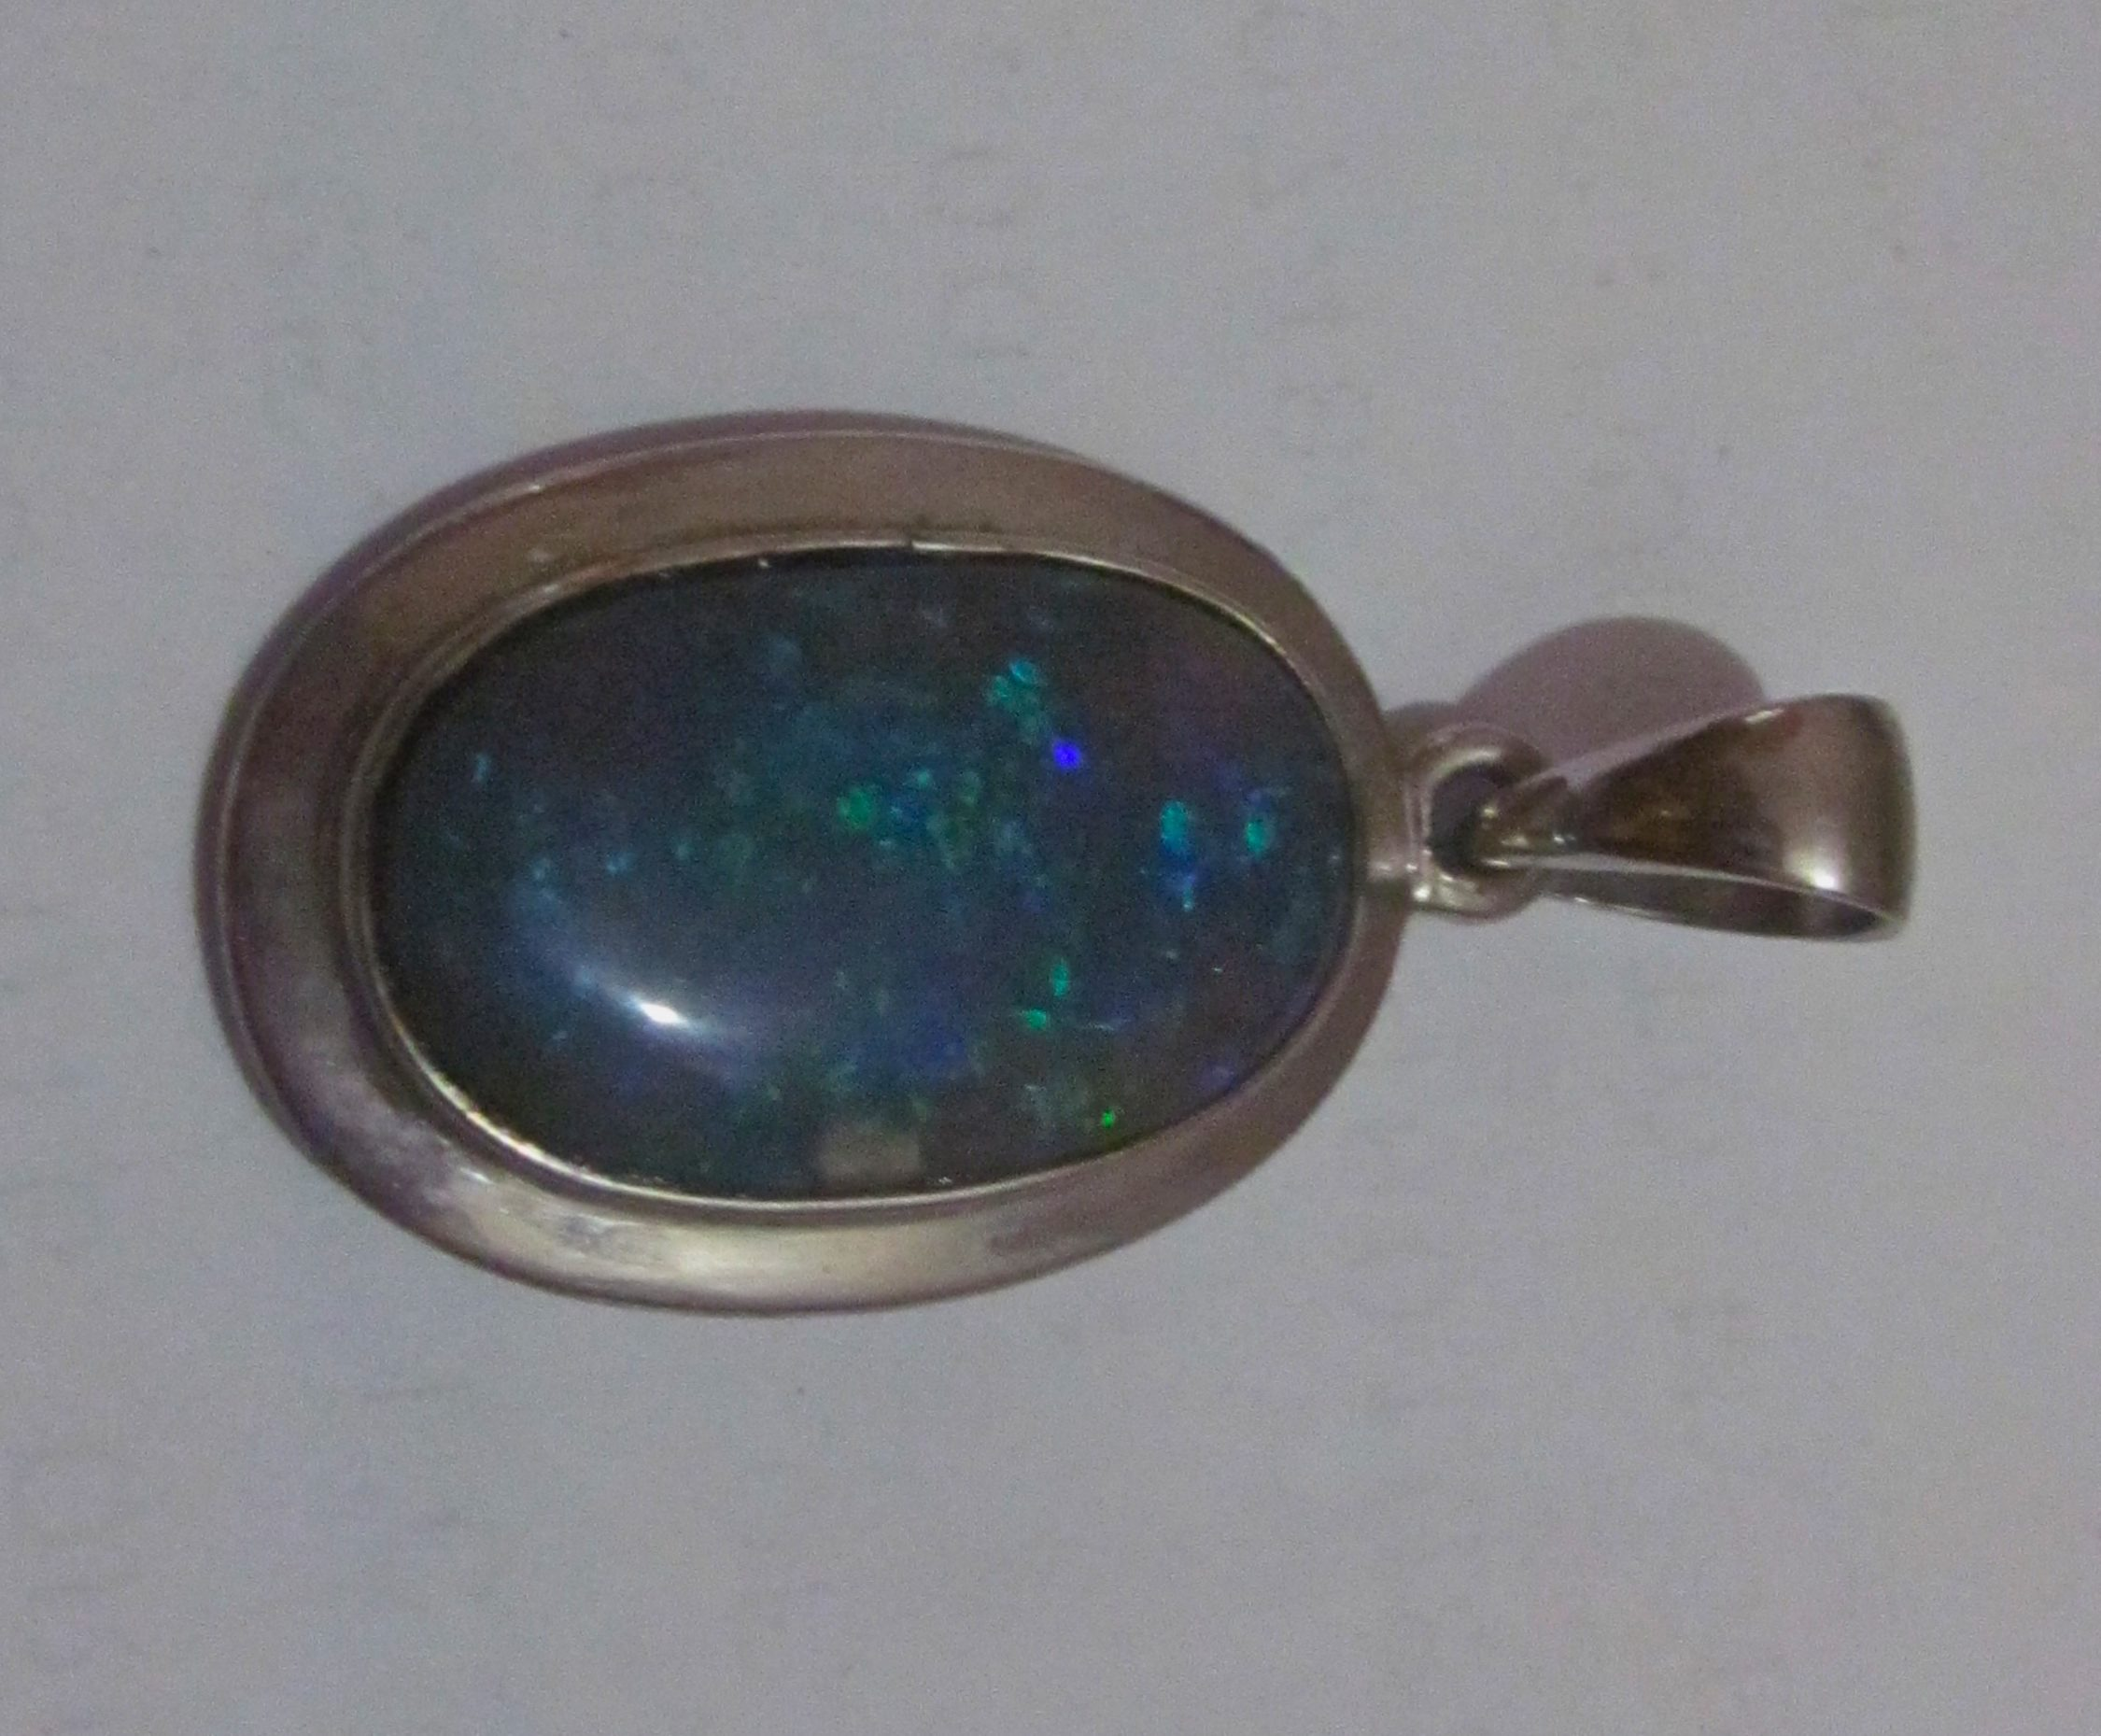 Finest Opals from official Government Heritage site in Australia. GR28